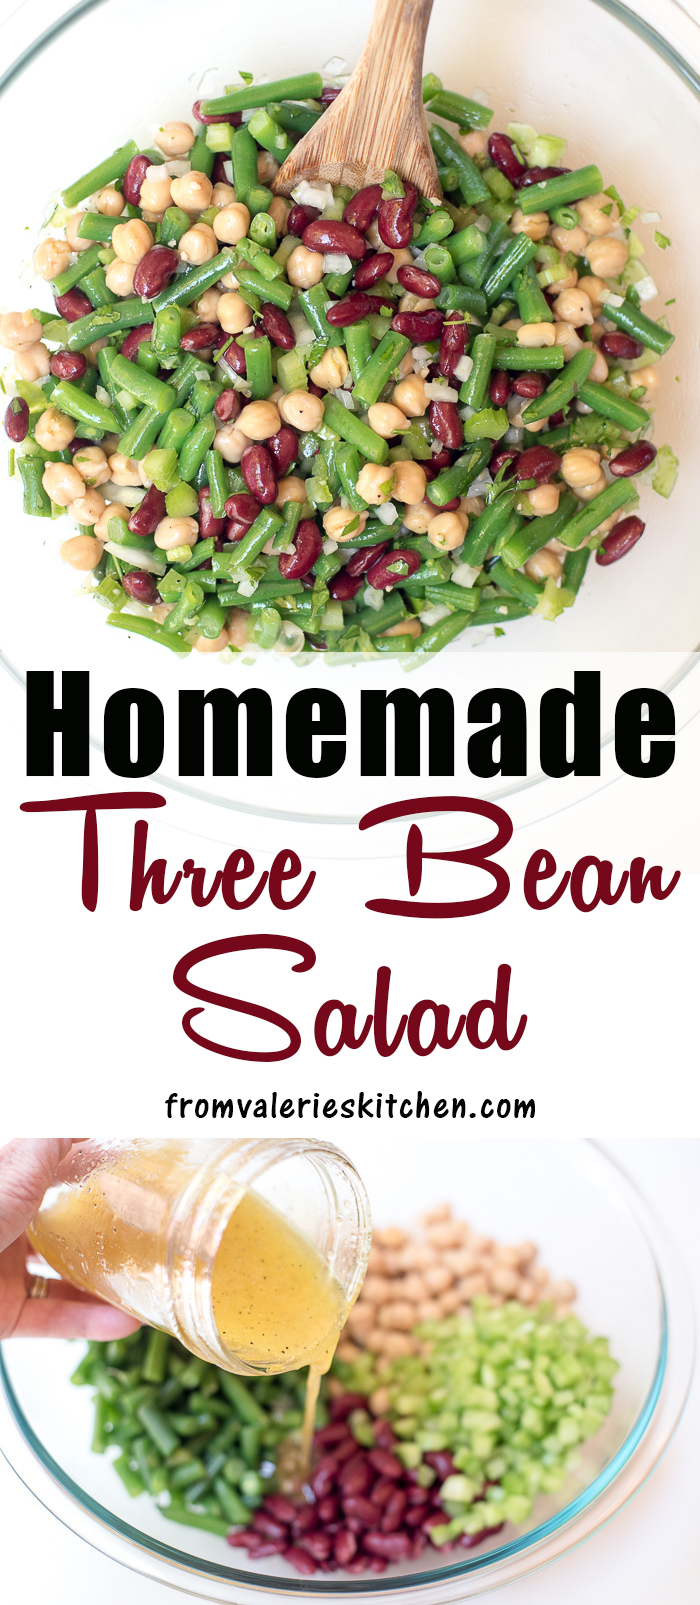 This Fresh Homemade Three Bean Salad Is So Much Tastier Than The Store Bought Variety The Dressing Gives It A Swe In 2020 Three Bean Salad Bean Salad Homemade Recipes